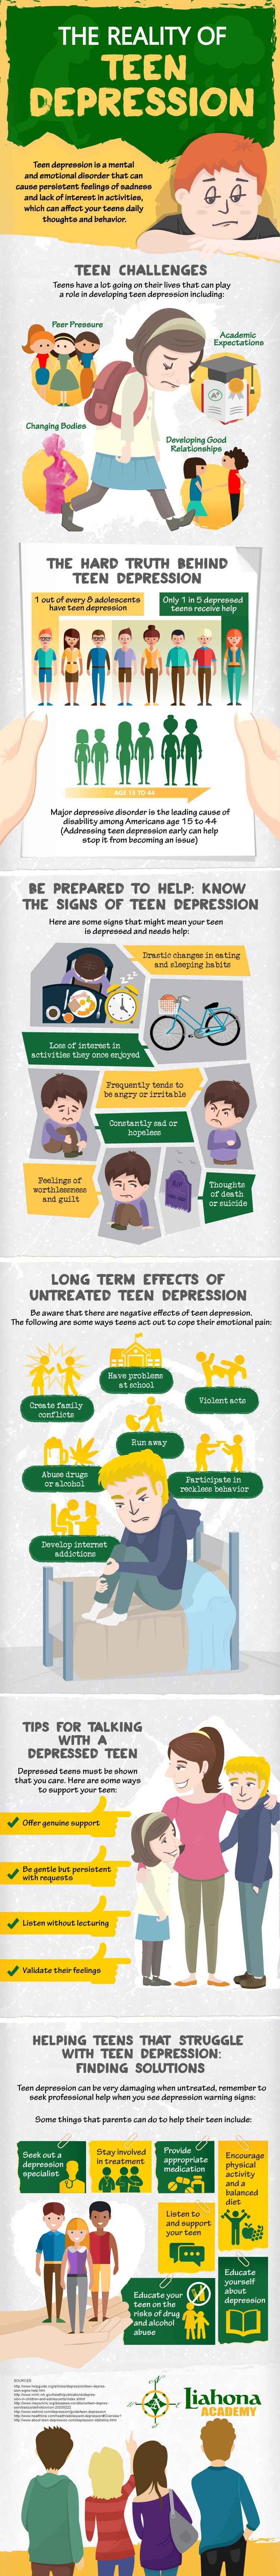 The Reality Of Teen Depression - Infographic